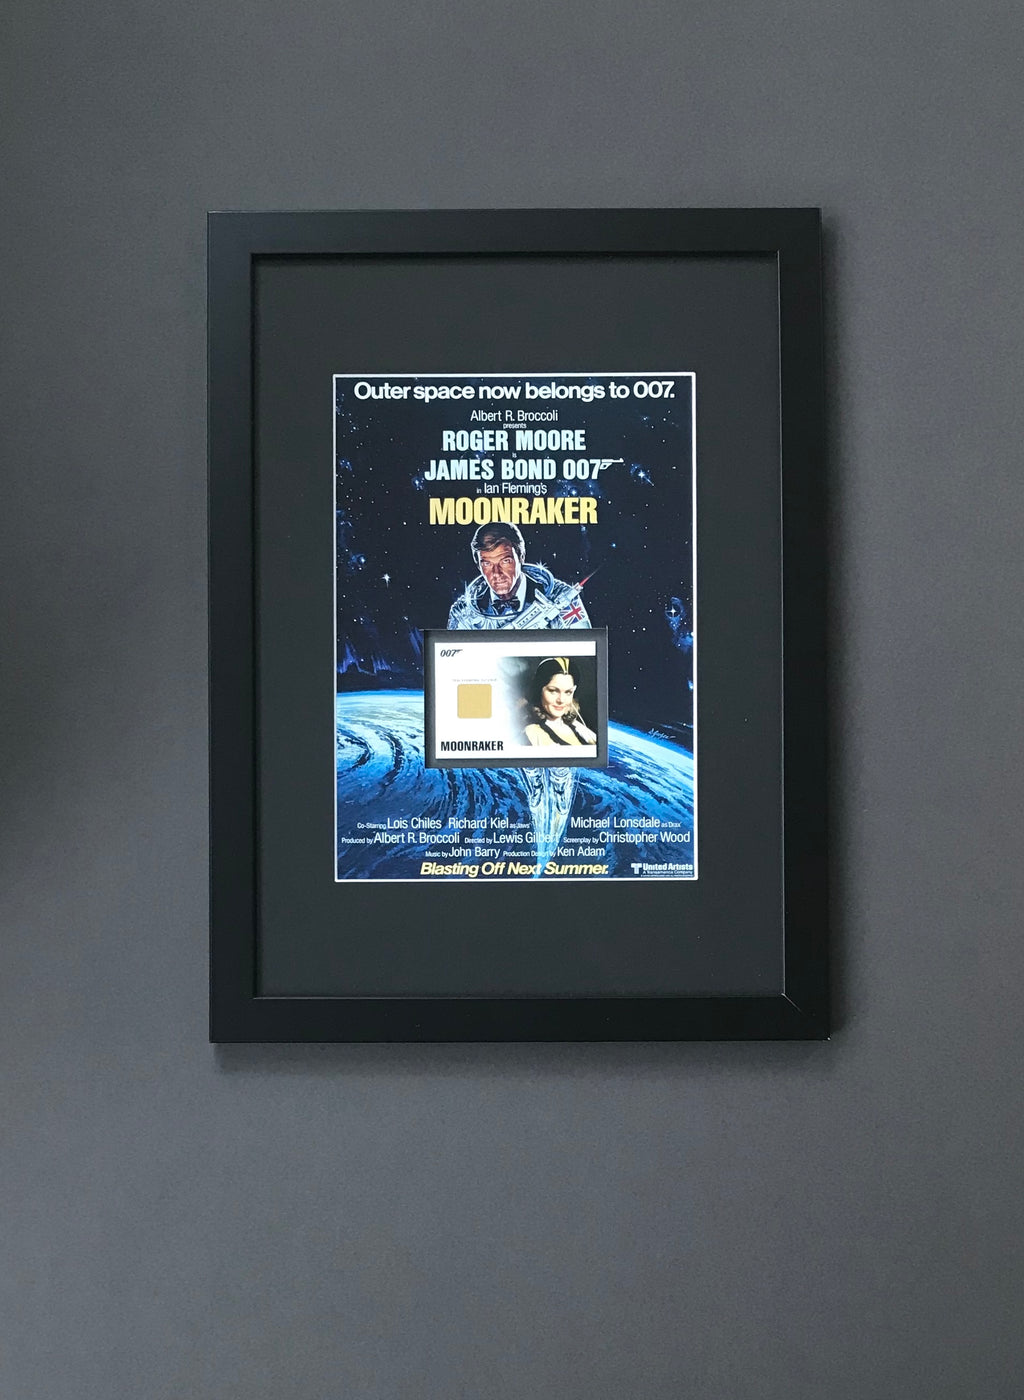 Moonraker (1979) - A Framed Promotional Still & Drax Industries Jumpsuit Swatch (SOLD)